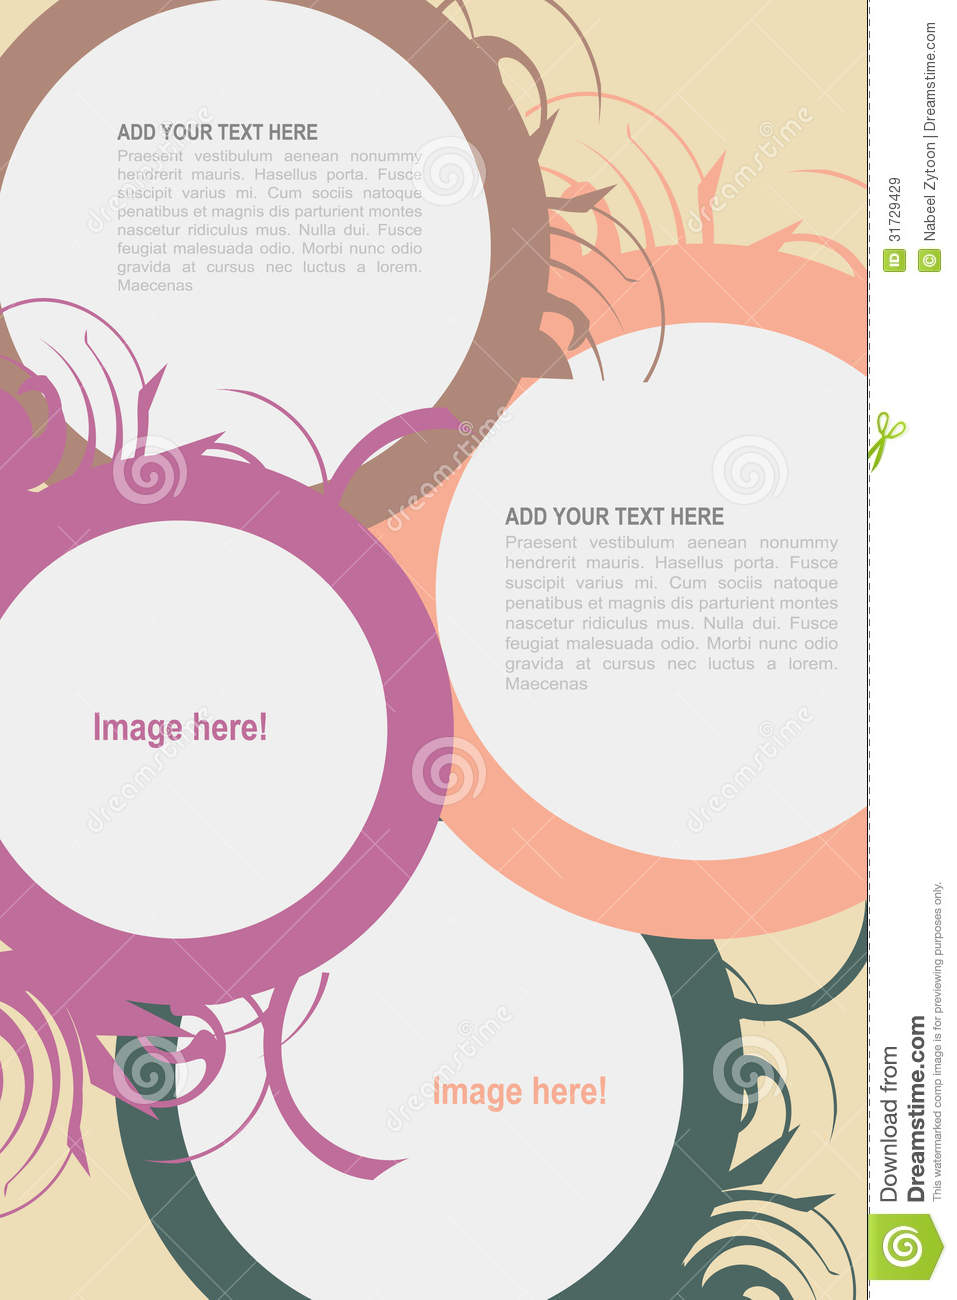 Downloadable Free Editable Flyer Templates